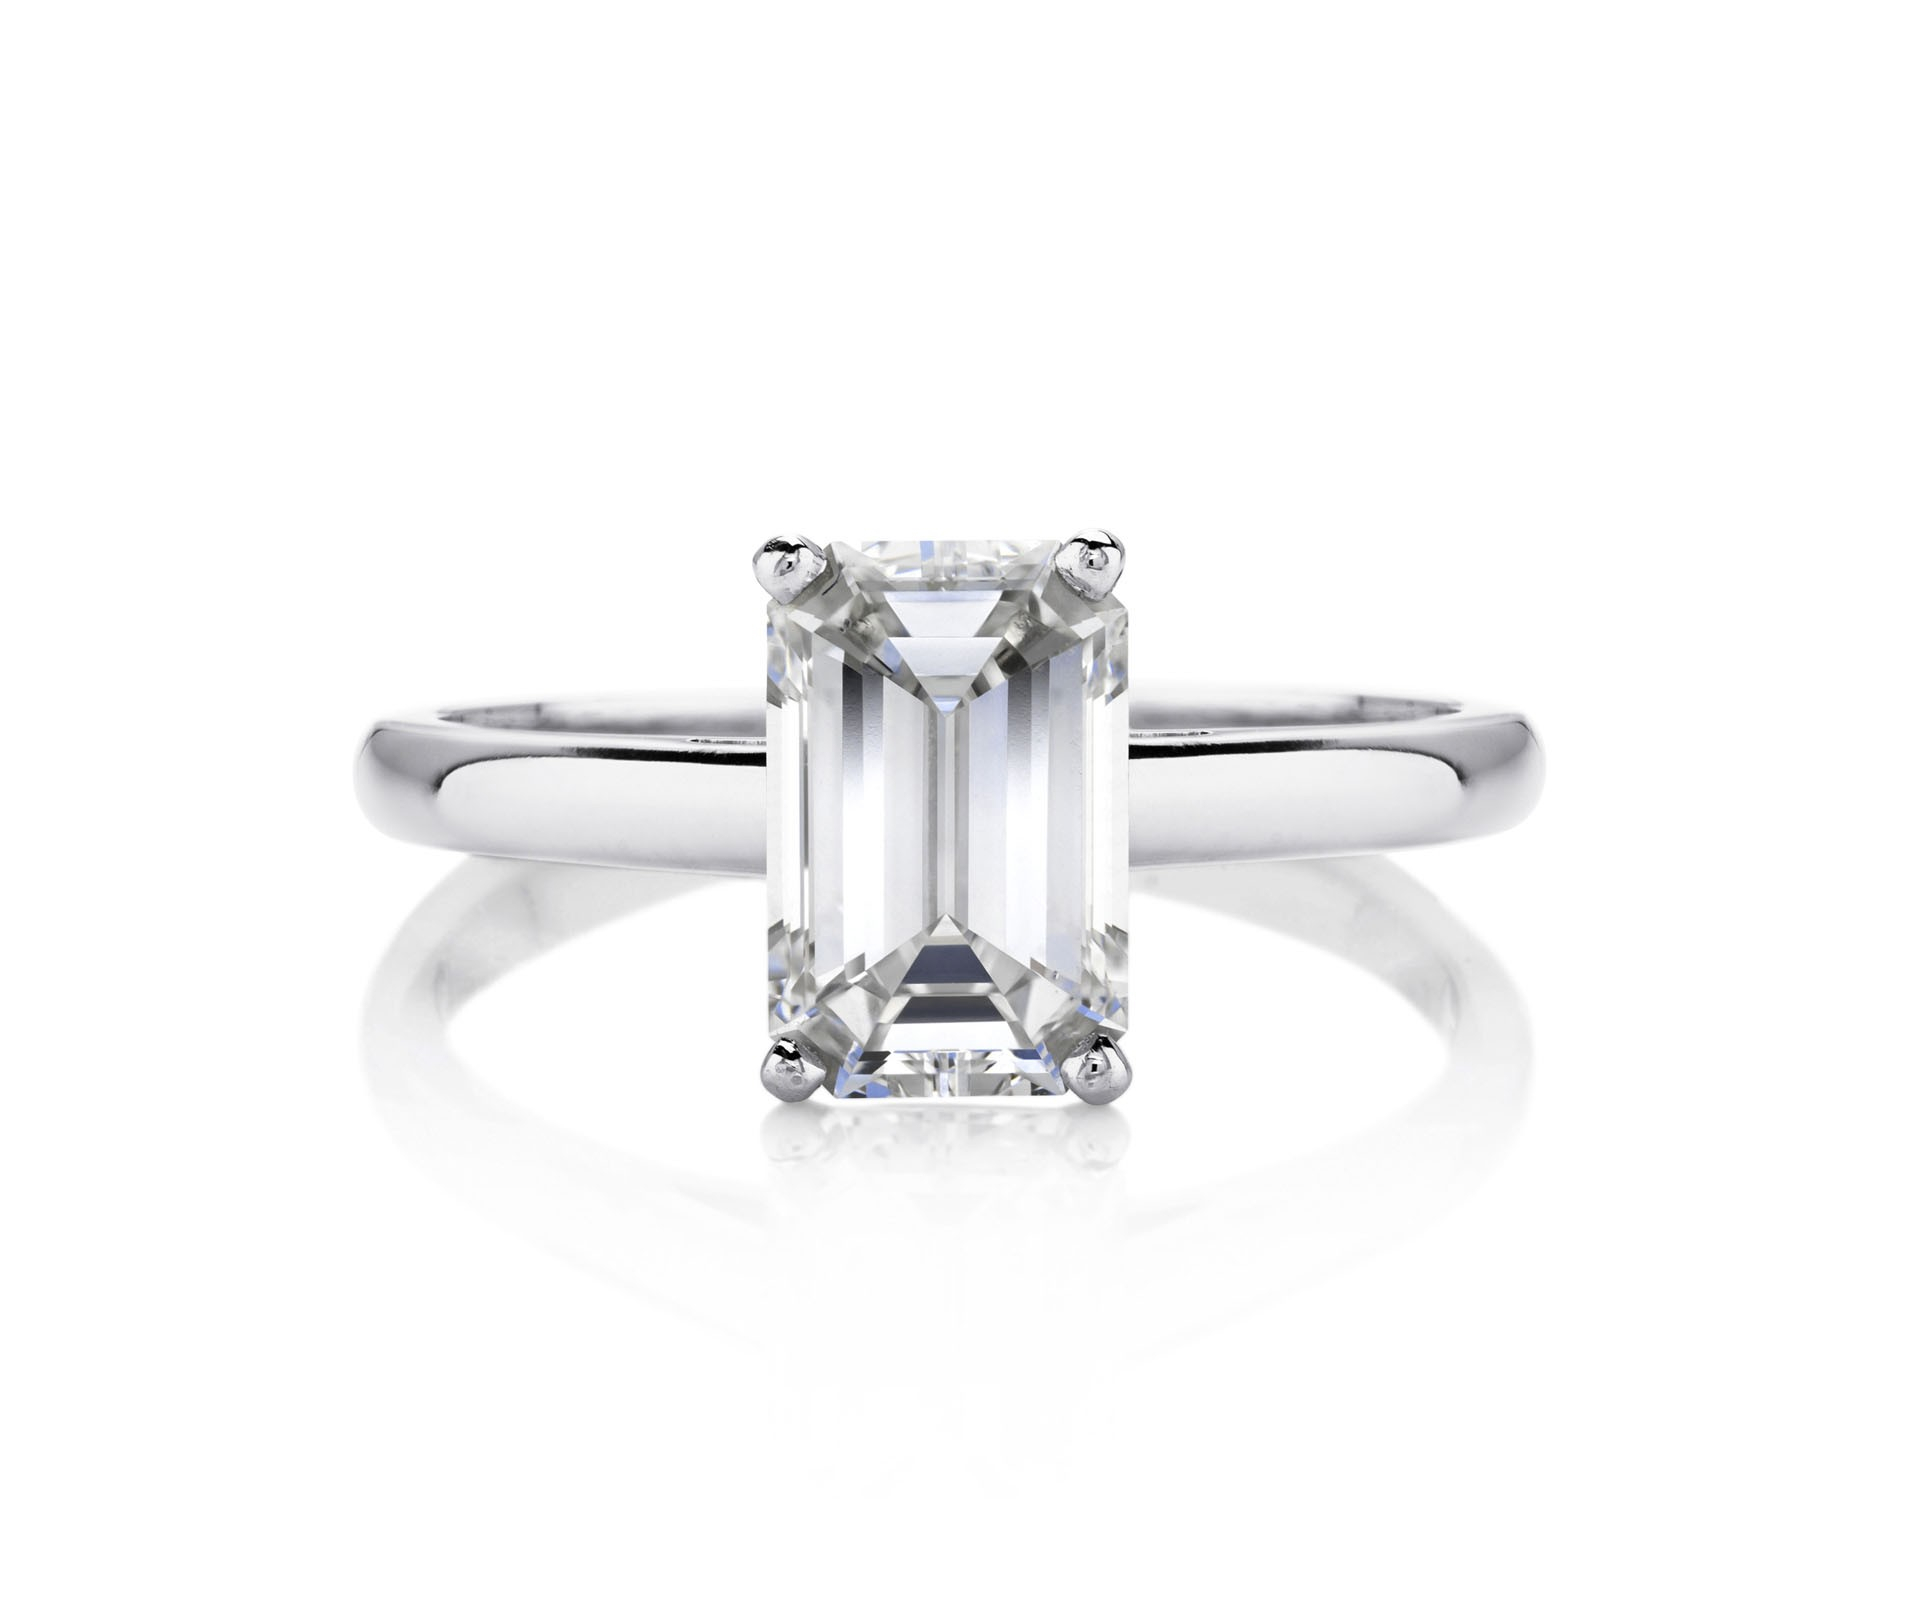 Db Classic Emerald Cut Solitaire Ring Pertaining To Current Prong Set Emerald Cut Diamond Wedding Bands (View 6 of 25)